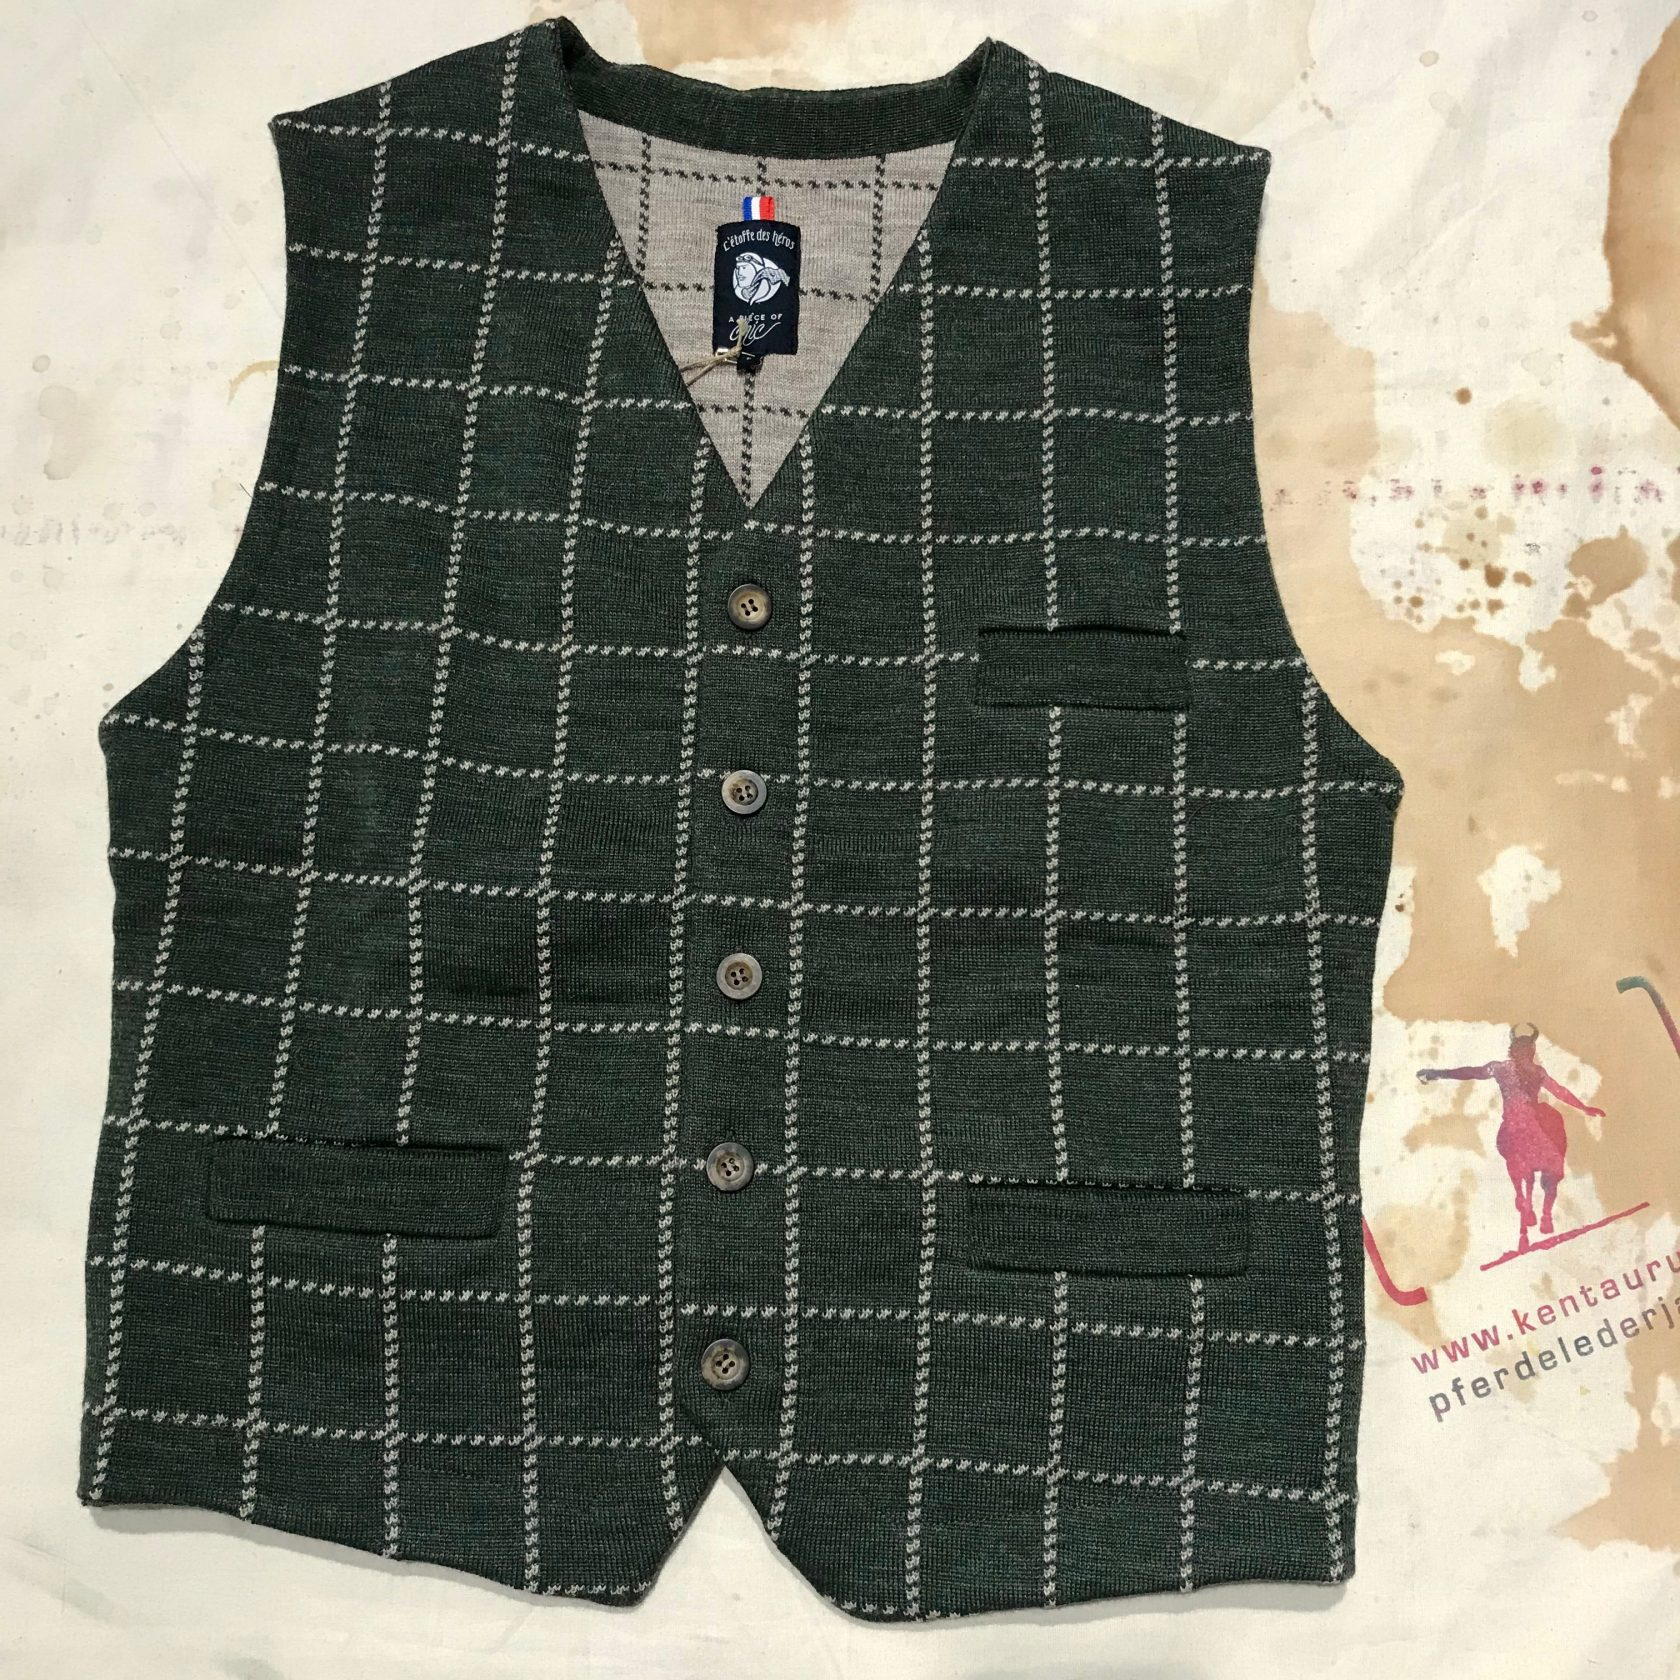 A Piece of Chic westminster wool vest